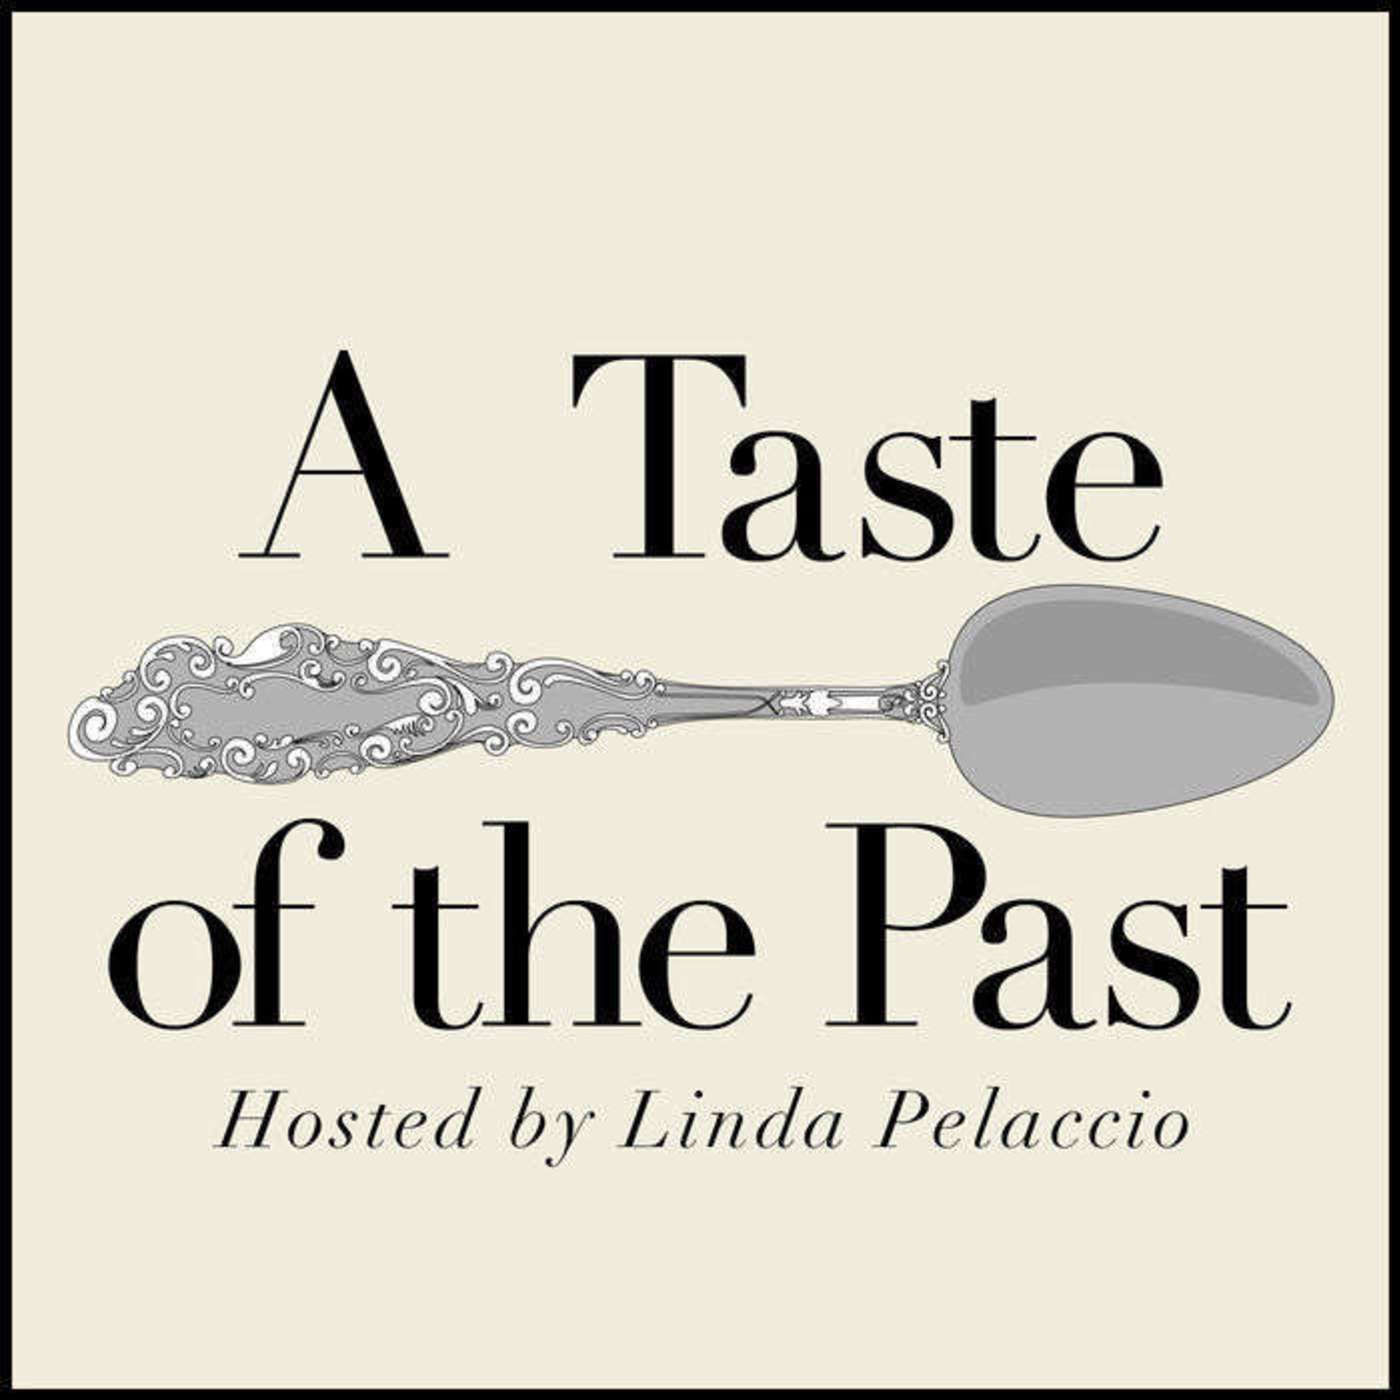 Episode 7: Chinese Food with Andrew Coe